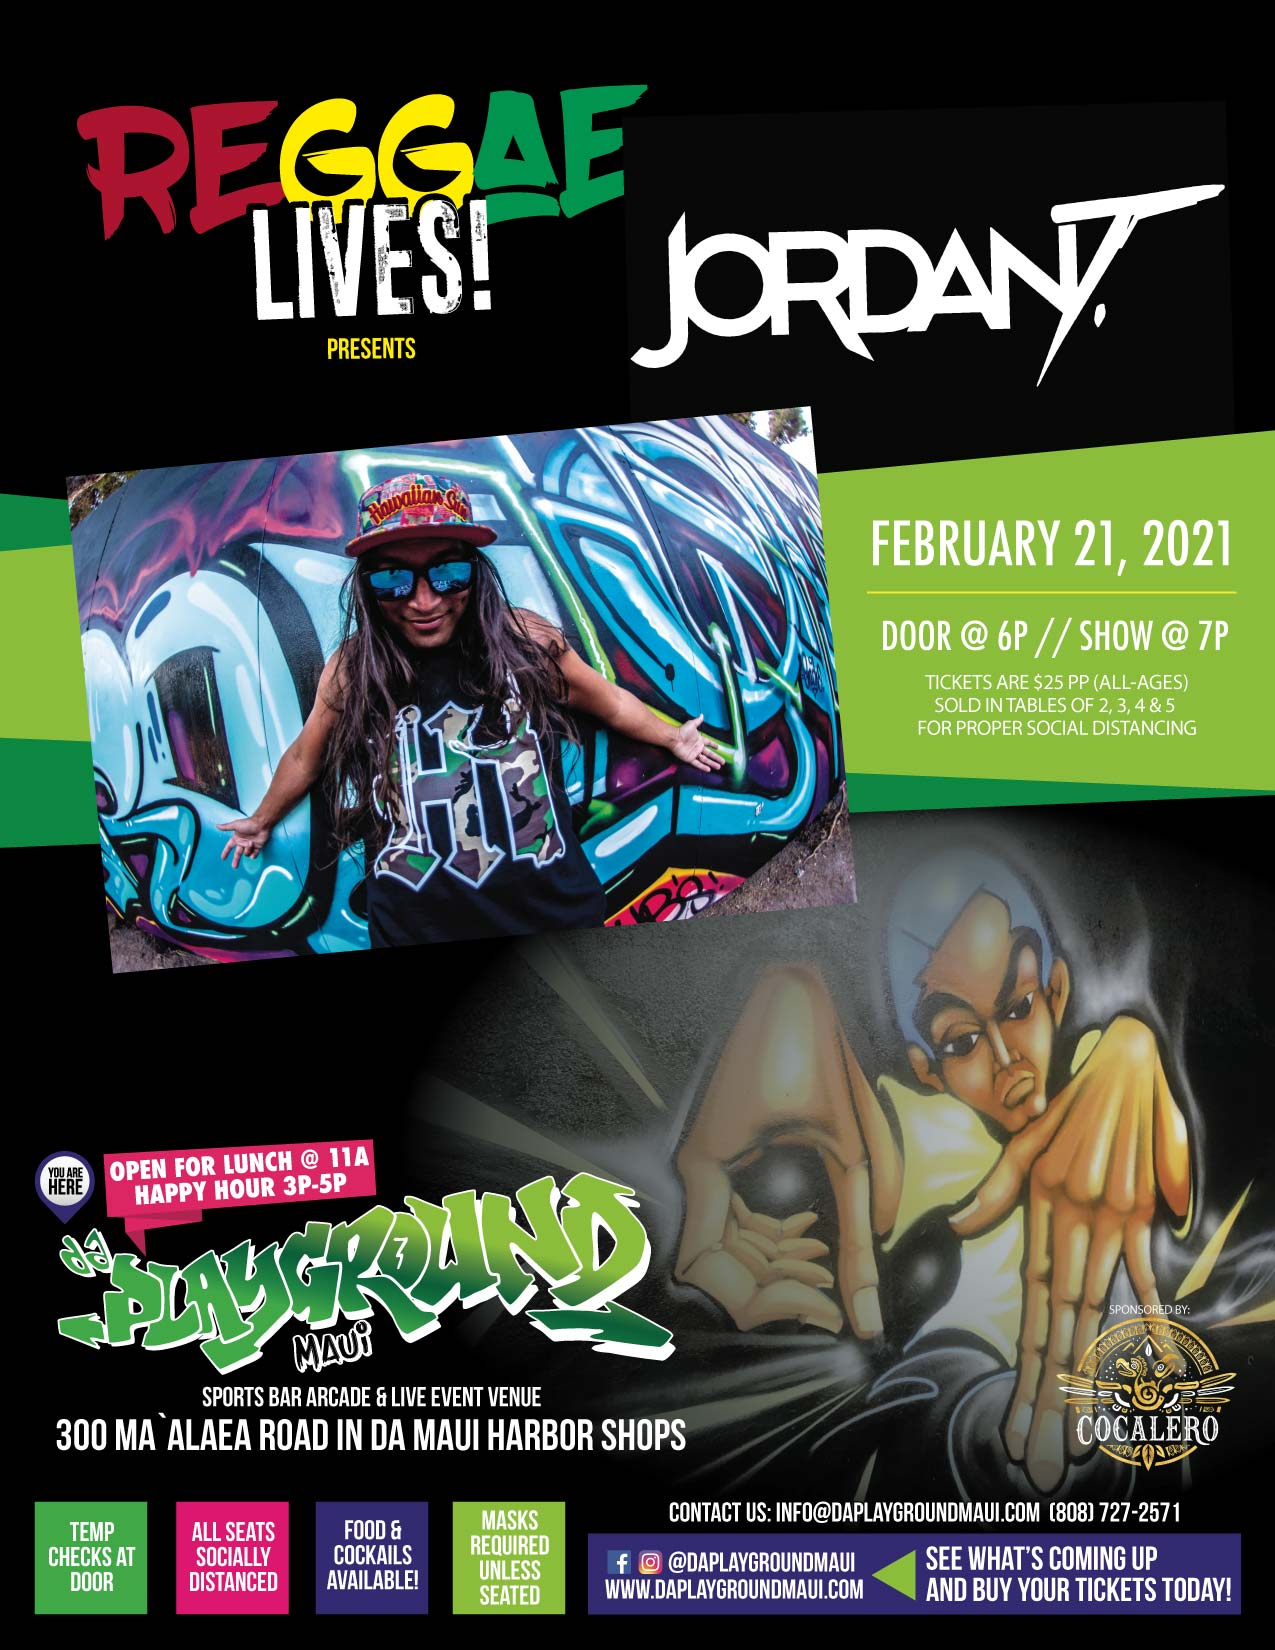 Reggae Lives! presents special performance by Jordan T!